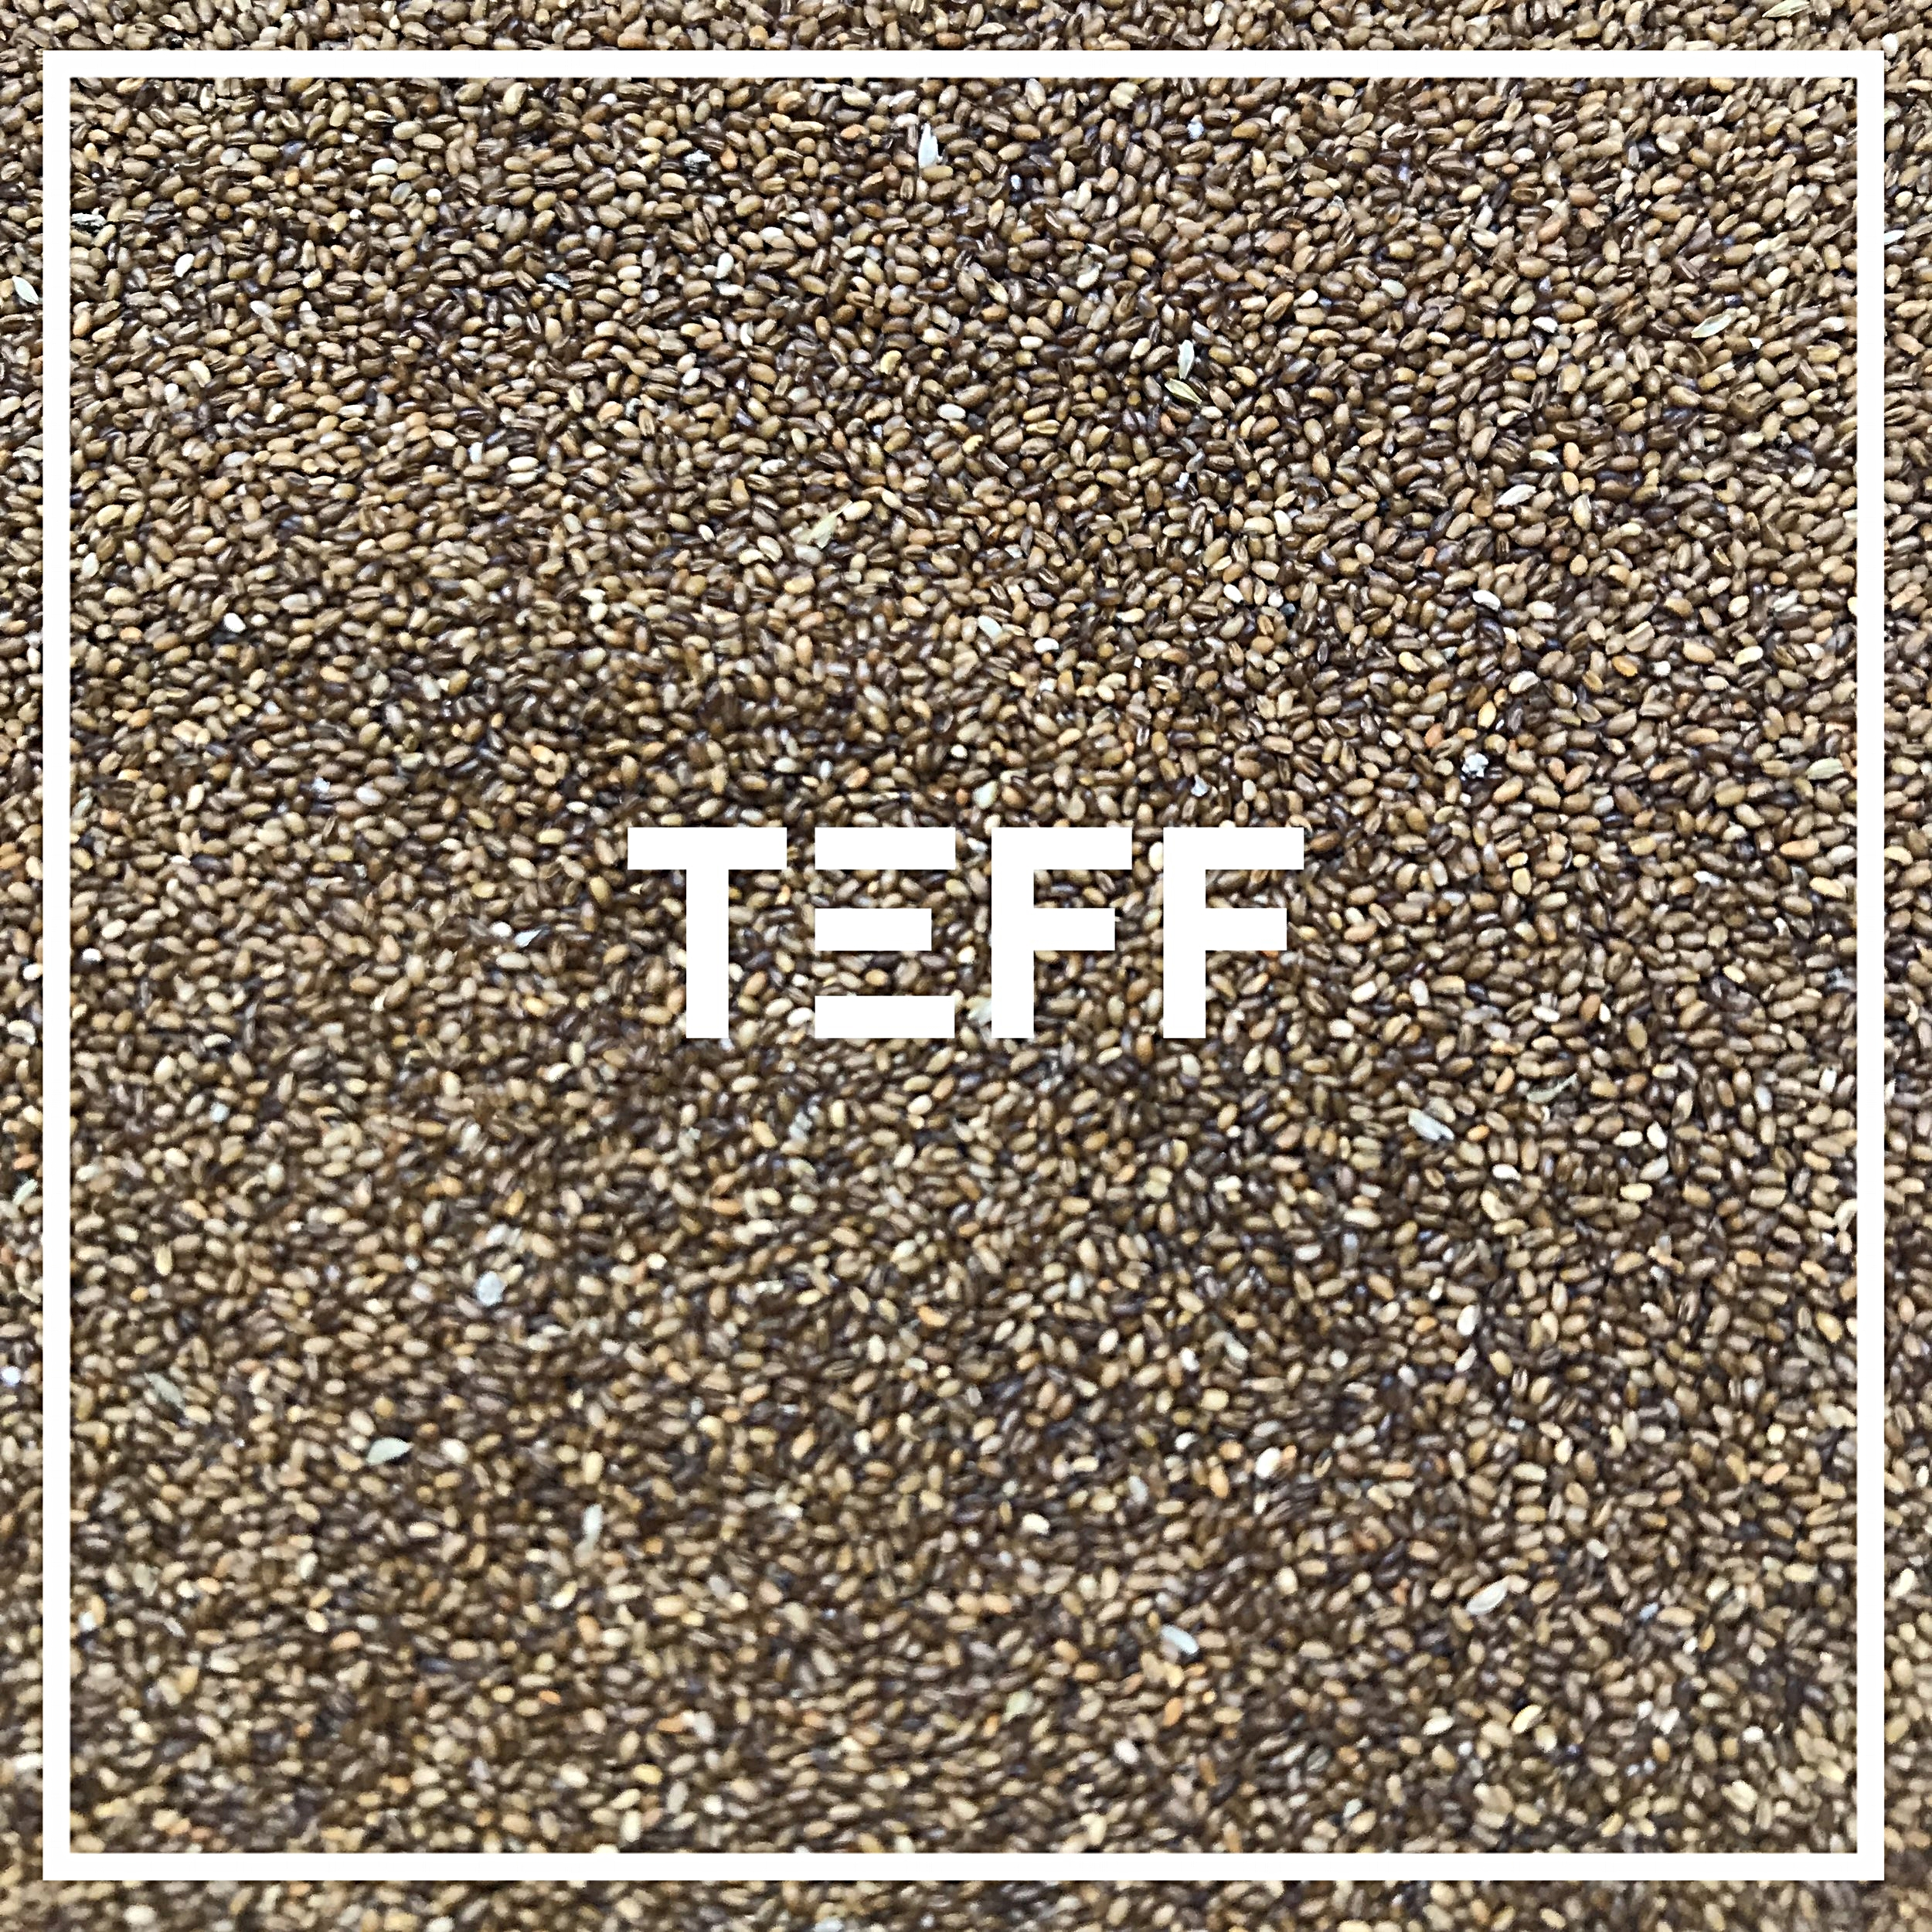 Our Teff is grown in the snake river valley of Idaho, by  Maskal Teff.  Founded by Wayne Carlson, the first person to successfully grow Teff in the United States.   Used in: 1776   Teff, a small seed, is the staple grain of Ethiopia; typically made into sour, spongy Injera bread. Devilishly difficult to harvest, we're glad they've mastered it in Idaho. We use un-milled, whole grain teff seeds for a delicate crunch, rich buttery flavor, and incredible nutritional value.